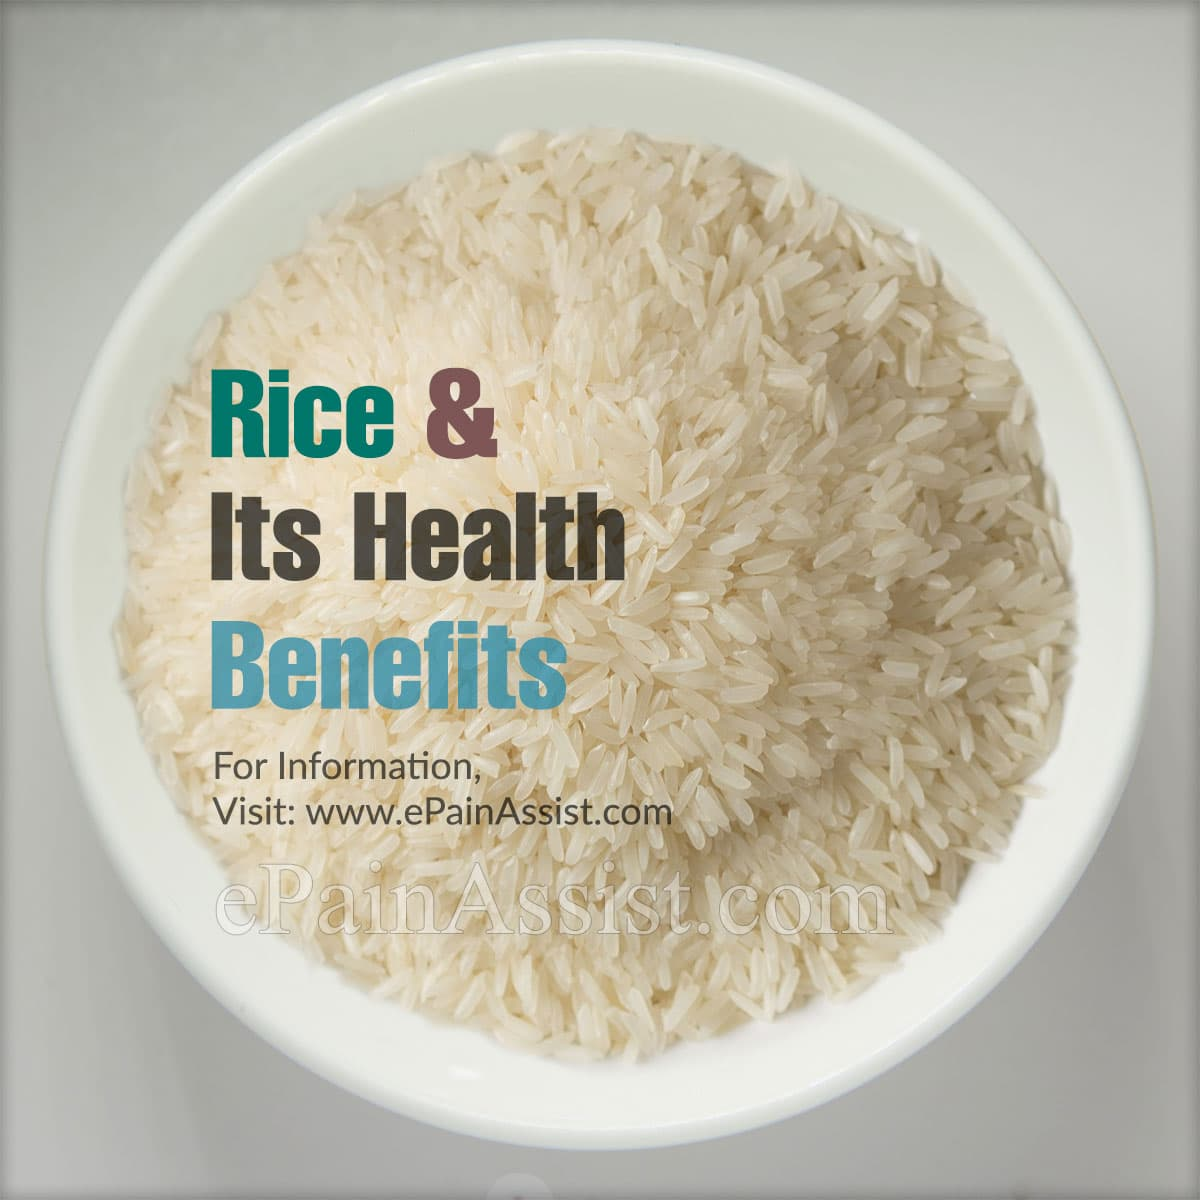 Rice and its Health Benefits